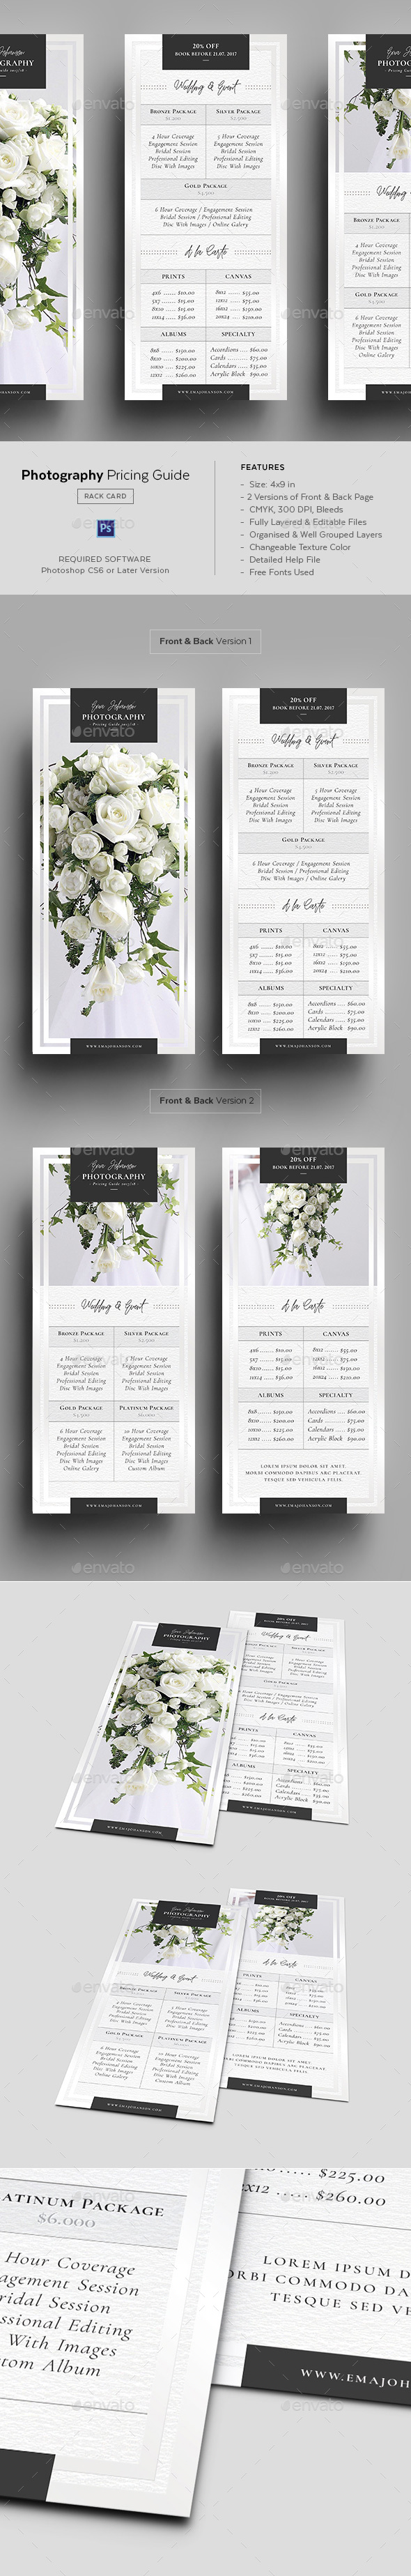 Photography Pricing Guide - Rack Card Template - Corporate Flyers